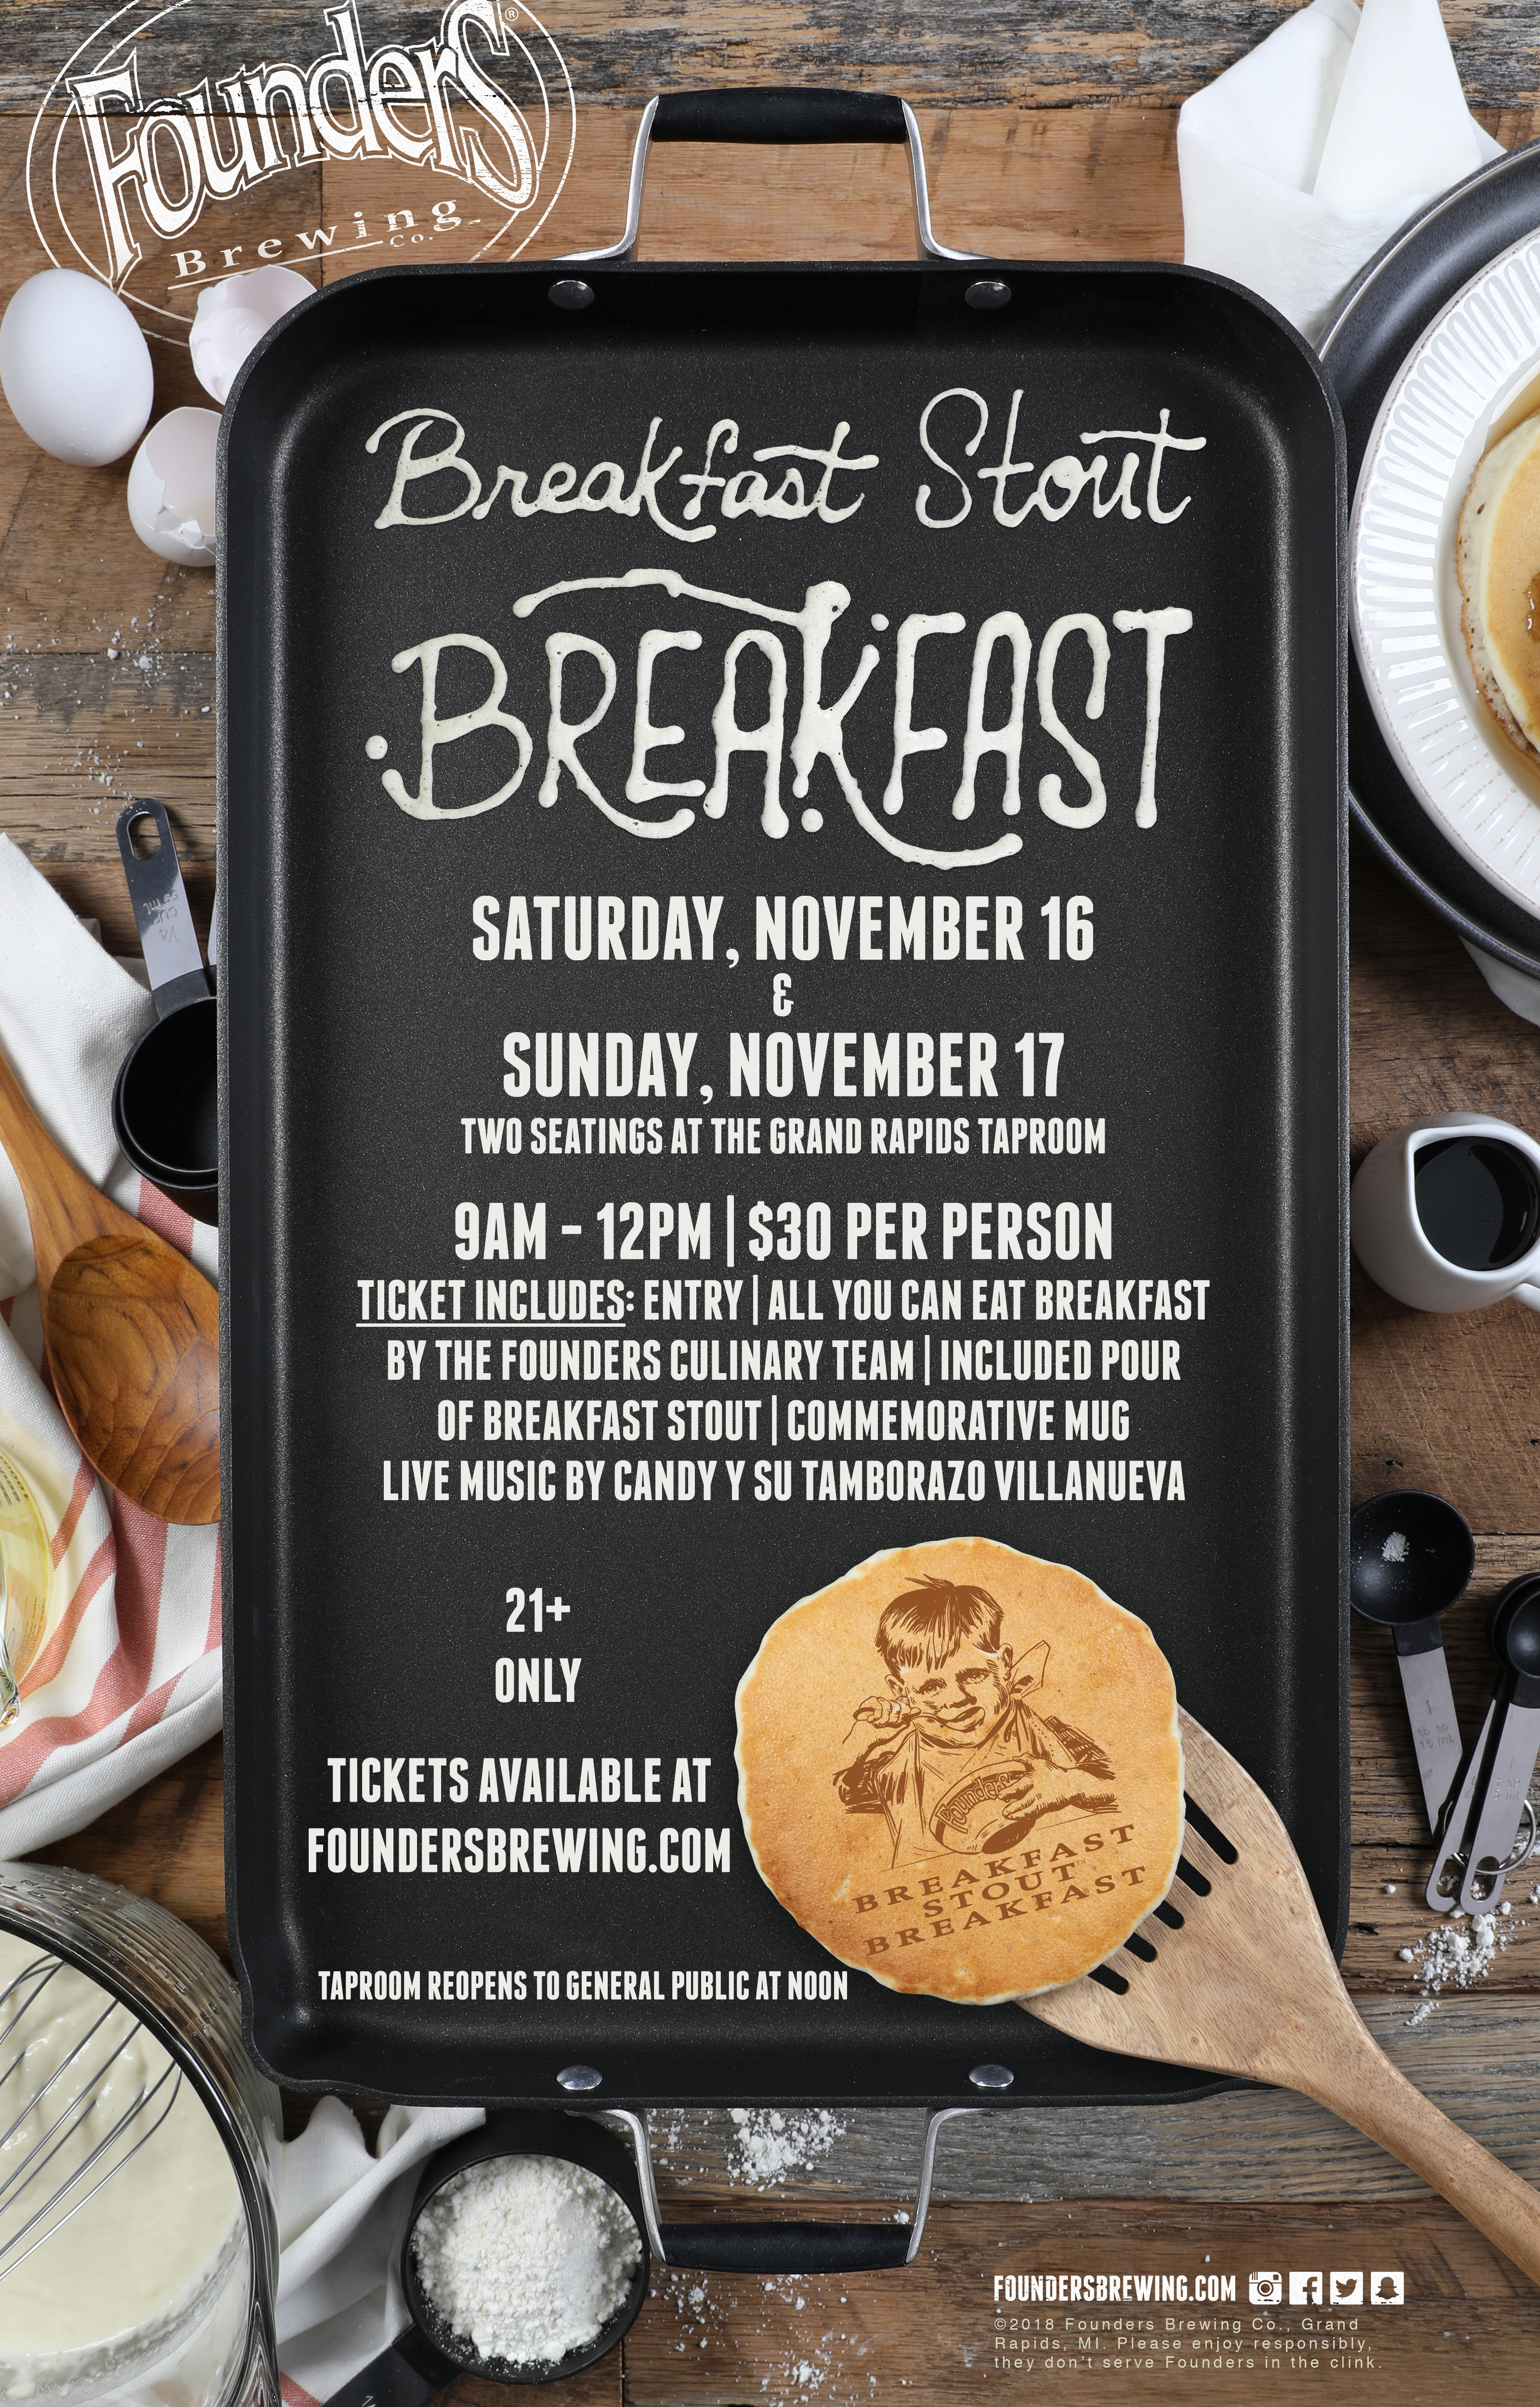 Breakfast Stout Breakfast event poster hosted at Founders Brewing Co.